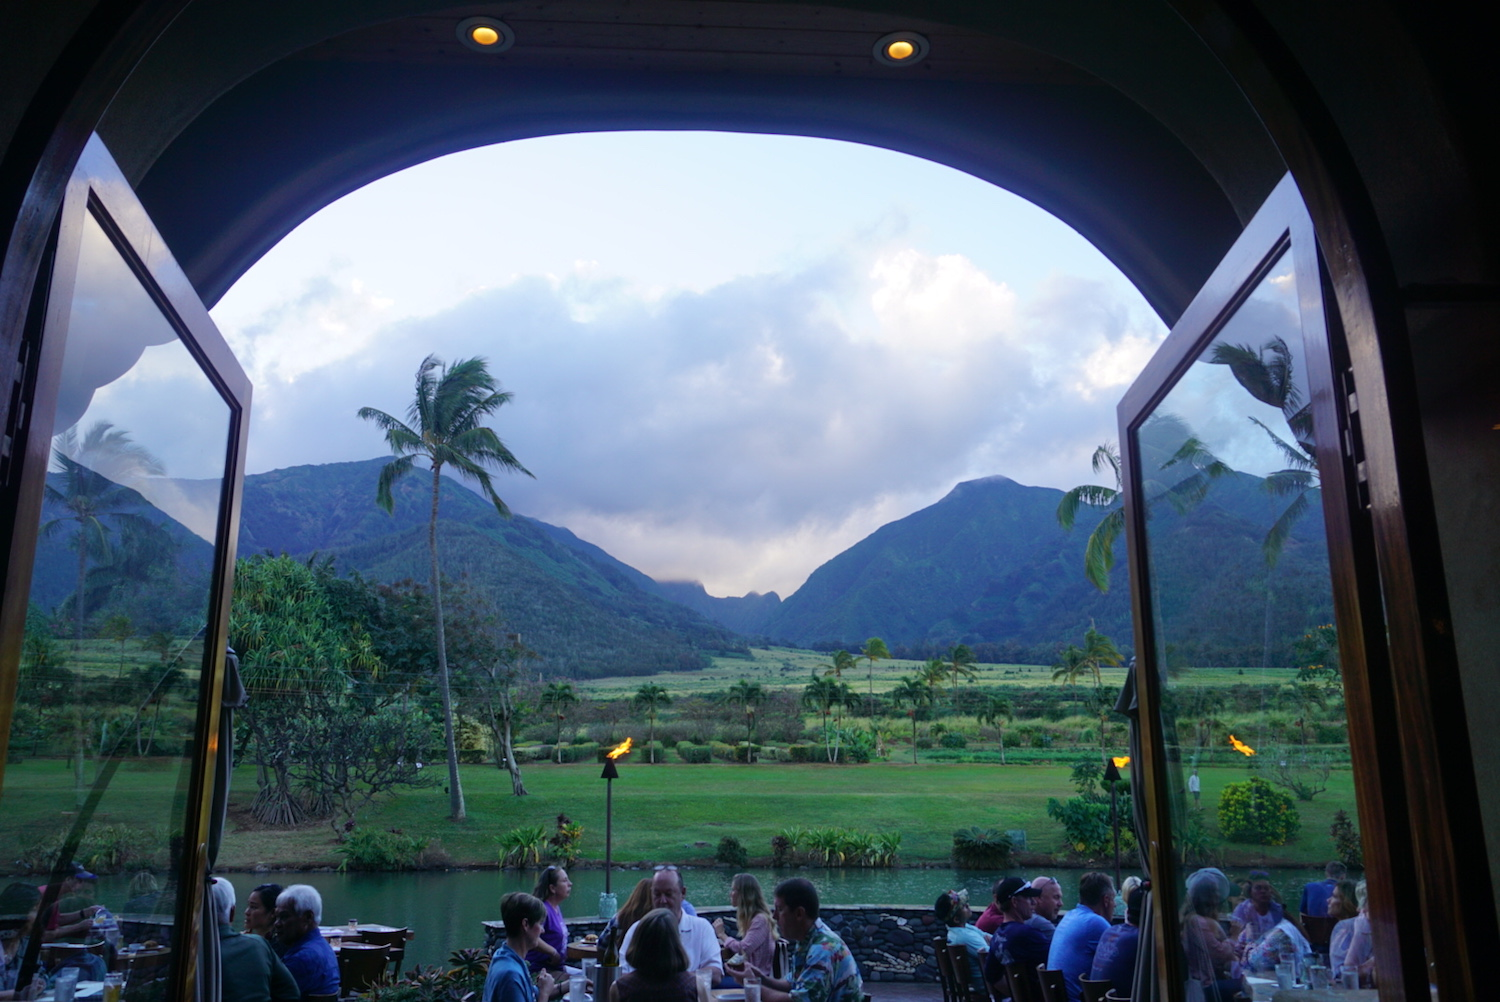 View from inside the Mill House Restaurant on Maui, Hawaii. boldlygotravel.com